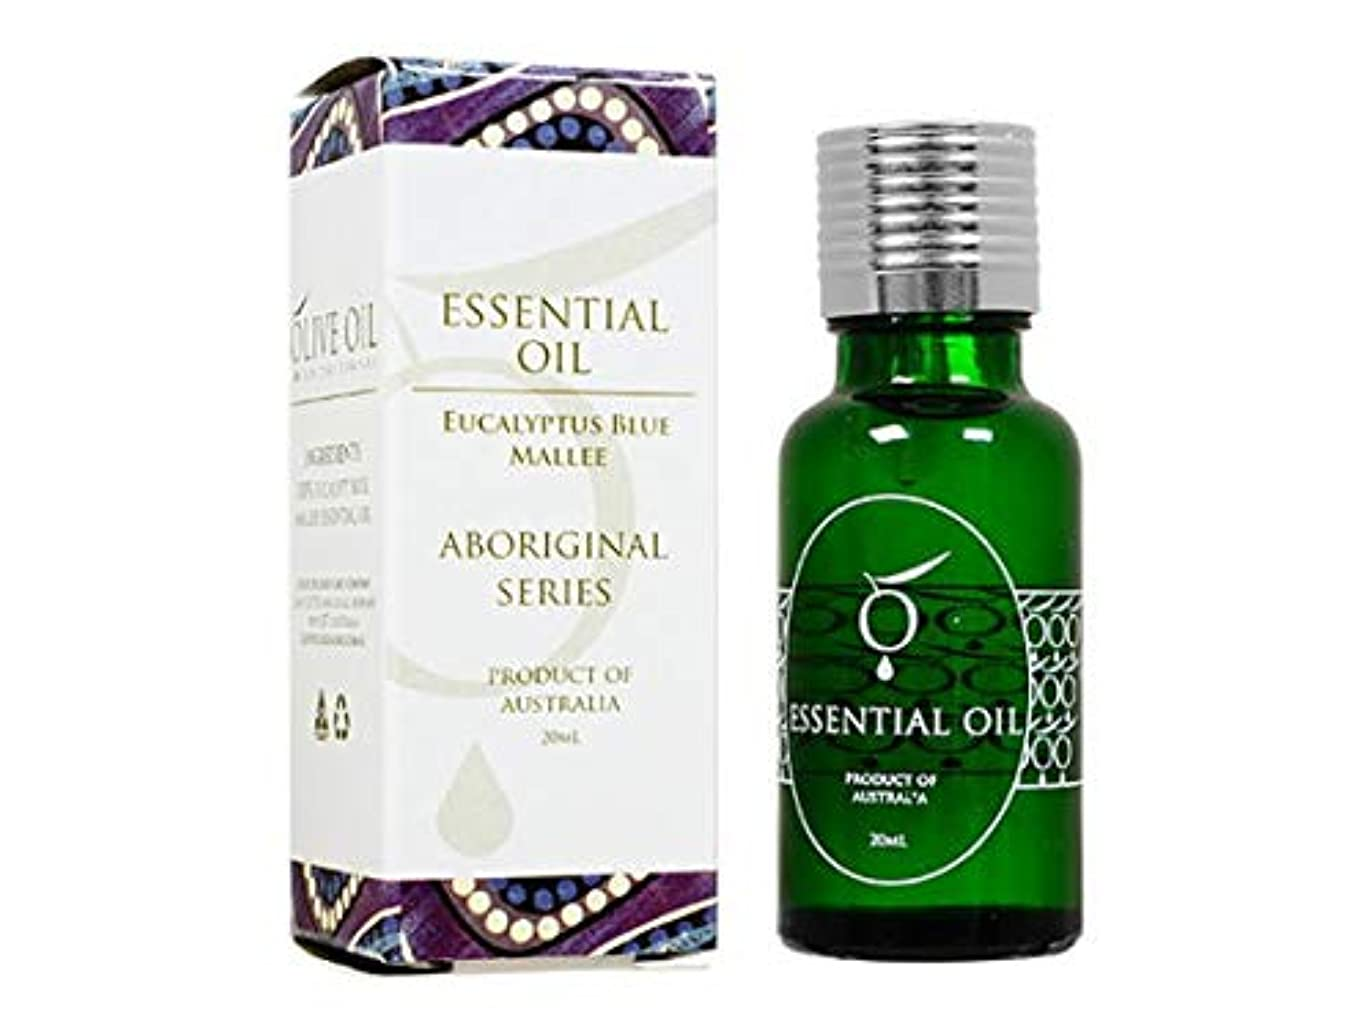 OliveOil エッセンシャルオイル?ユーカリブルーマリー 20ml (OliveOil) Essential Oil (Eucalyptus Blue Mallee) Made in Australia